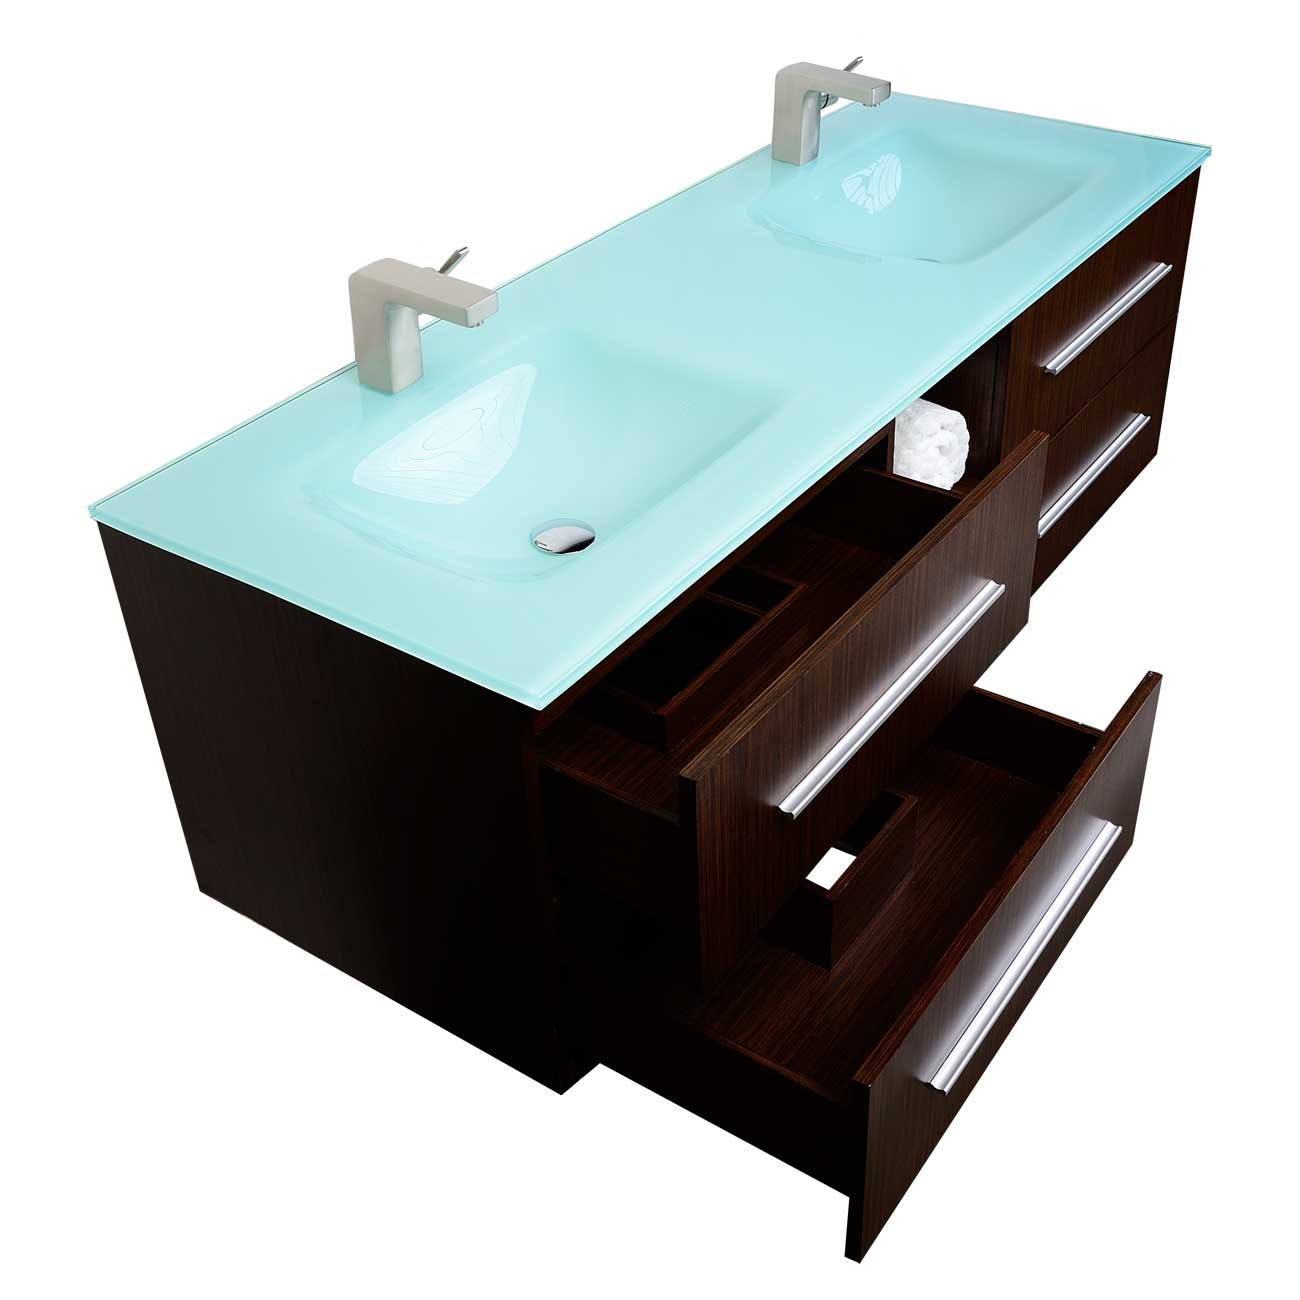 Best Modern Bathroom Vanity Cabis You Might Want To Try View In Gallery Wall Mounted